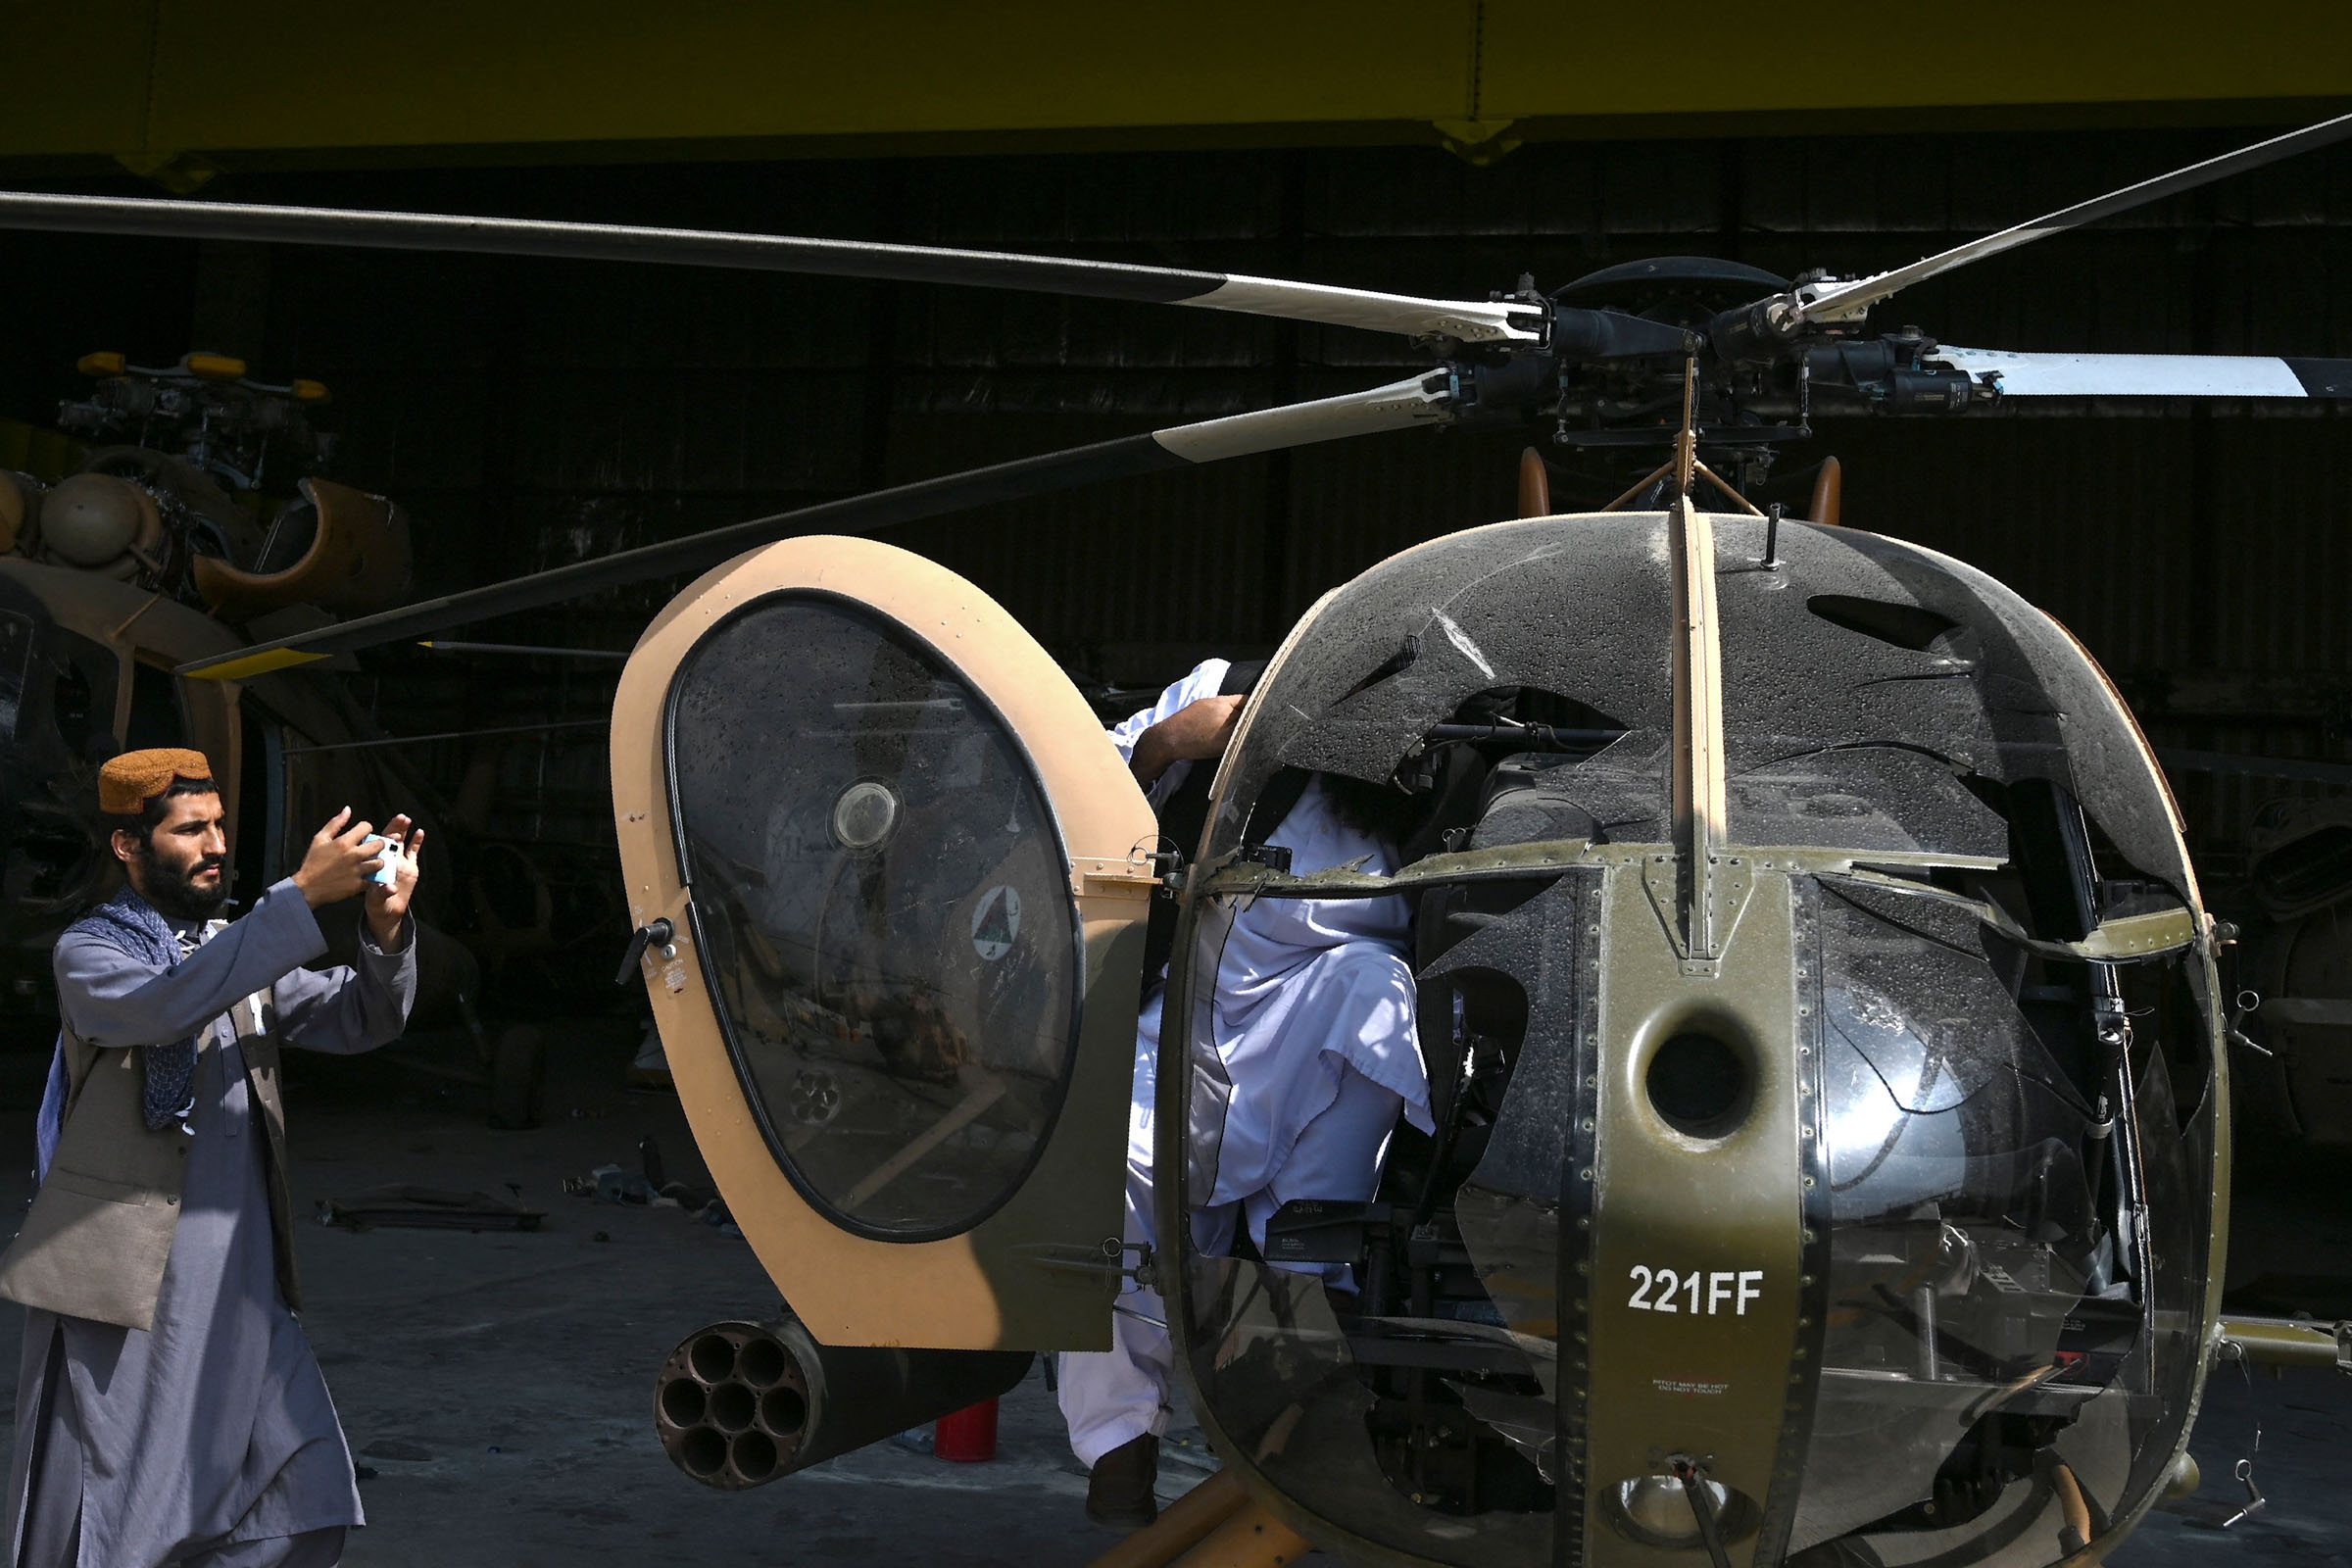 A Taliban fighter takes a picture of a damaged Afghan Air Forces MD 530 helicopter at Kabul airport.